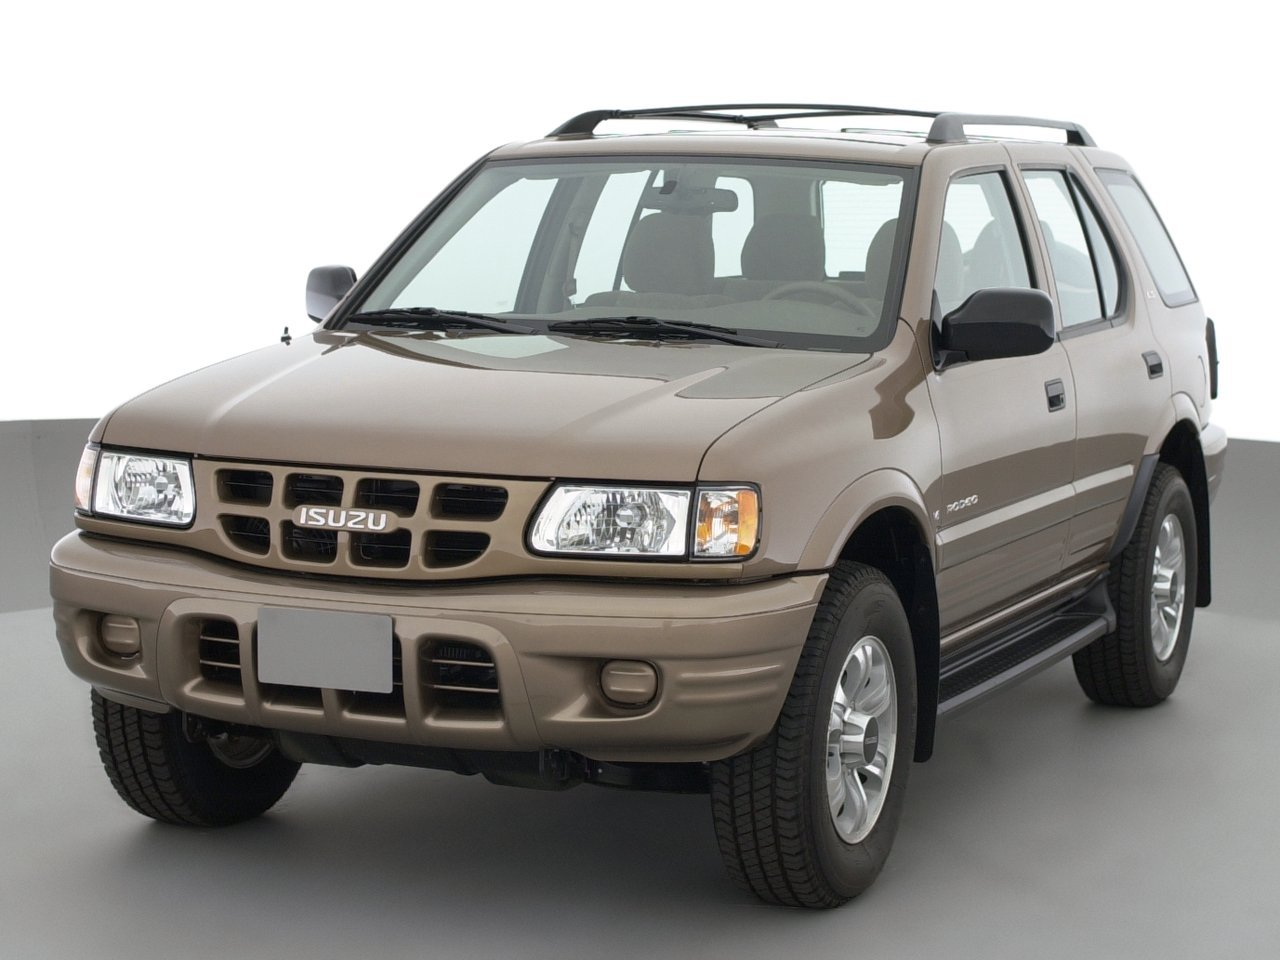 Amazon com: 2001 Isuzu Trooper Reviews, Images, and Specs